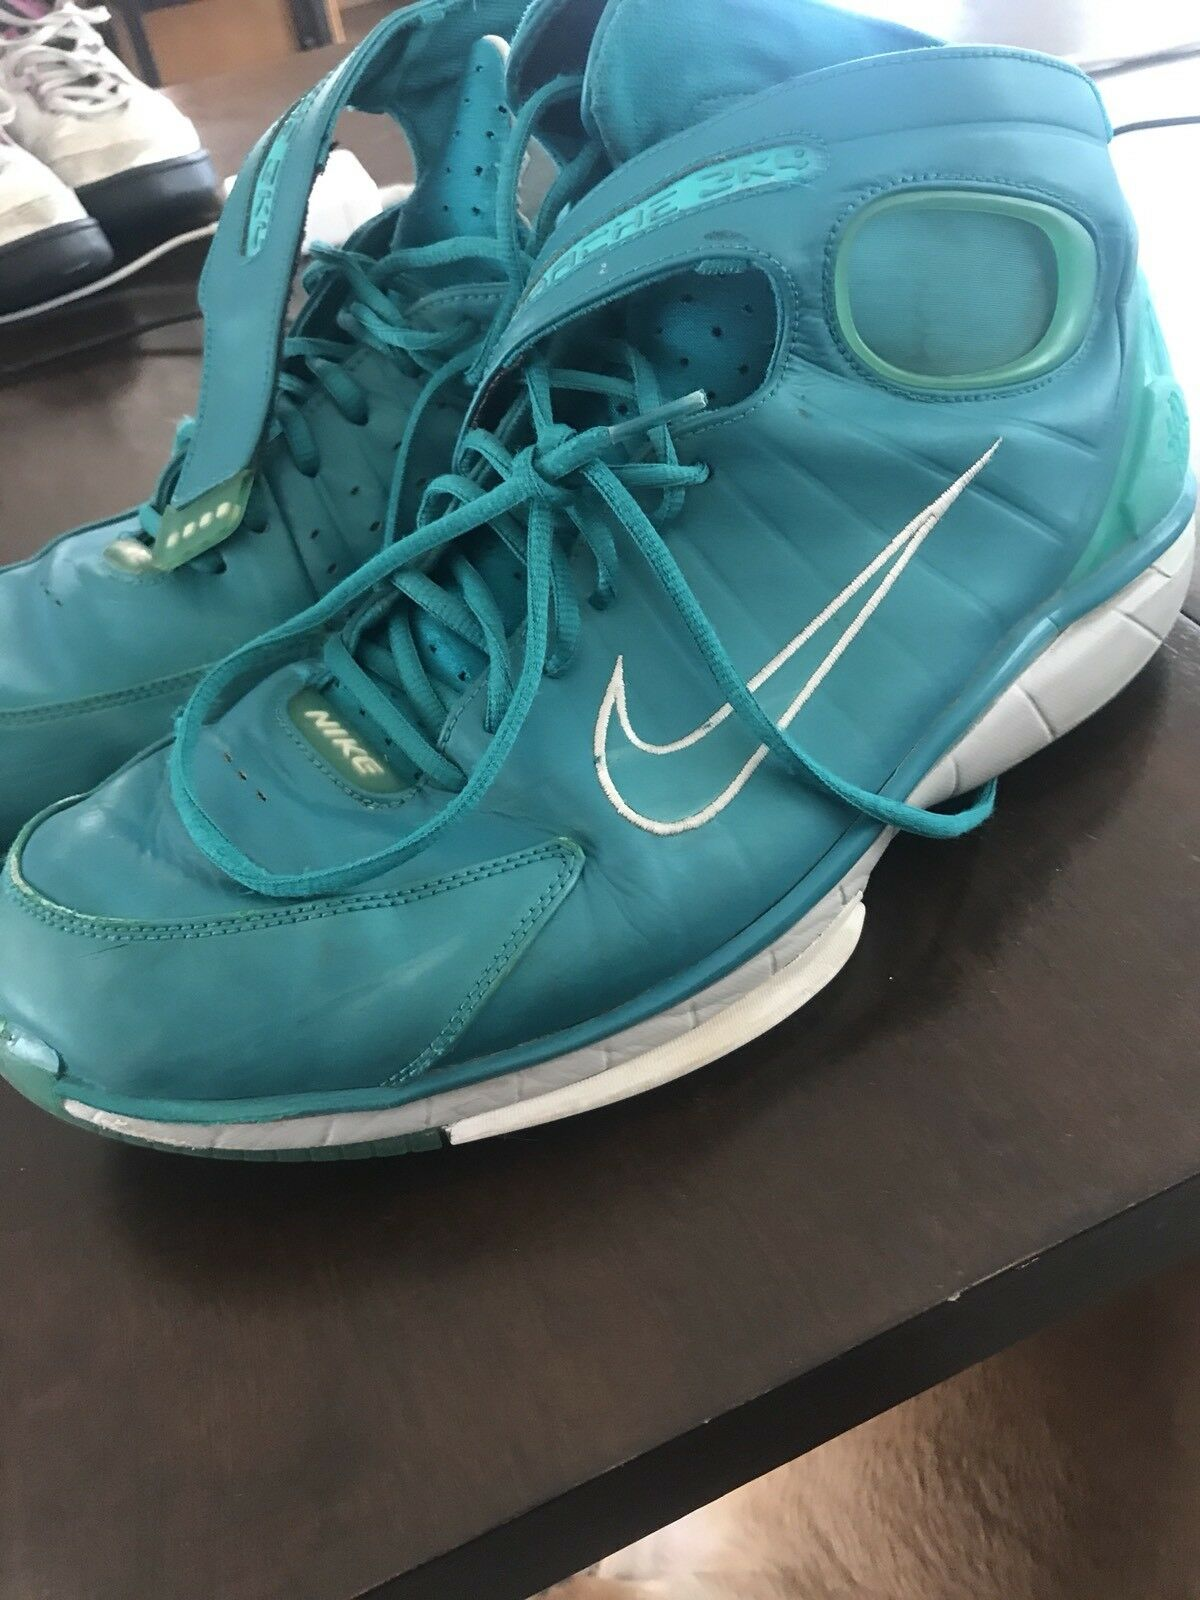 Nike Air  Zoom Huarache 2k4 KOBE Lush Teal 511425 330 Sz. 15 New shoes for men and women, limited time discount